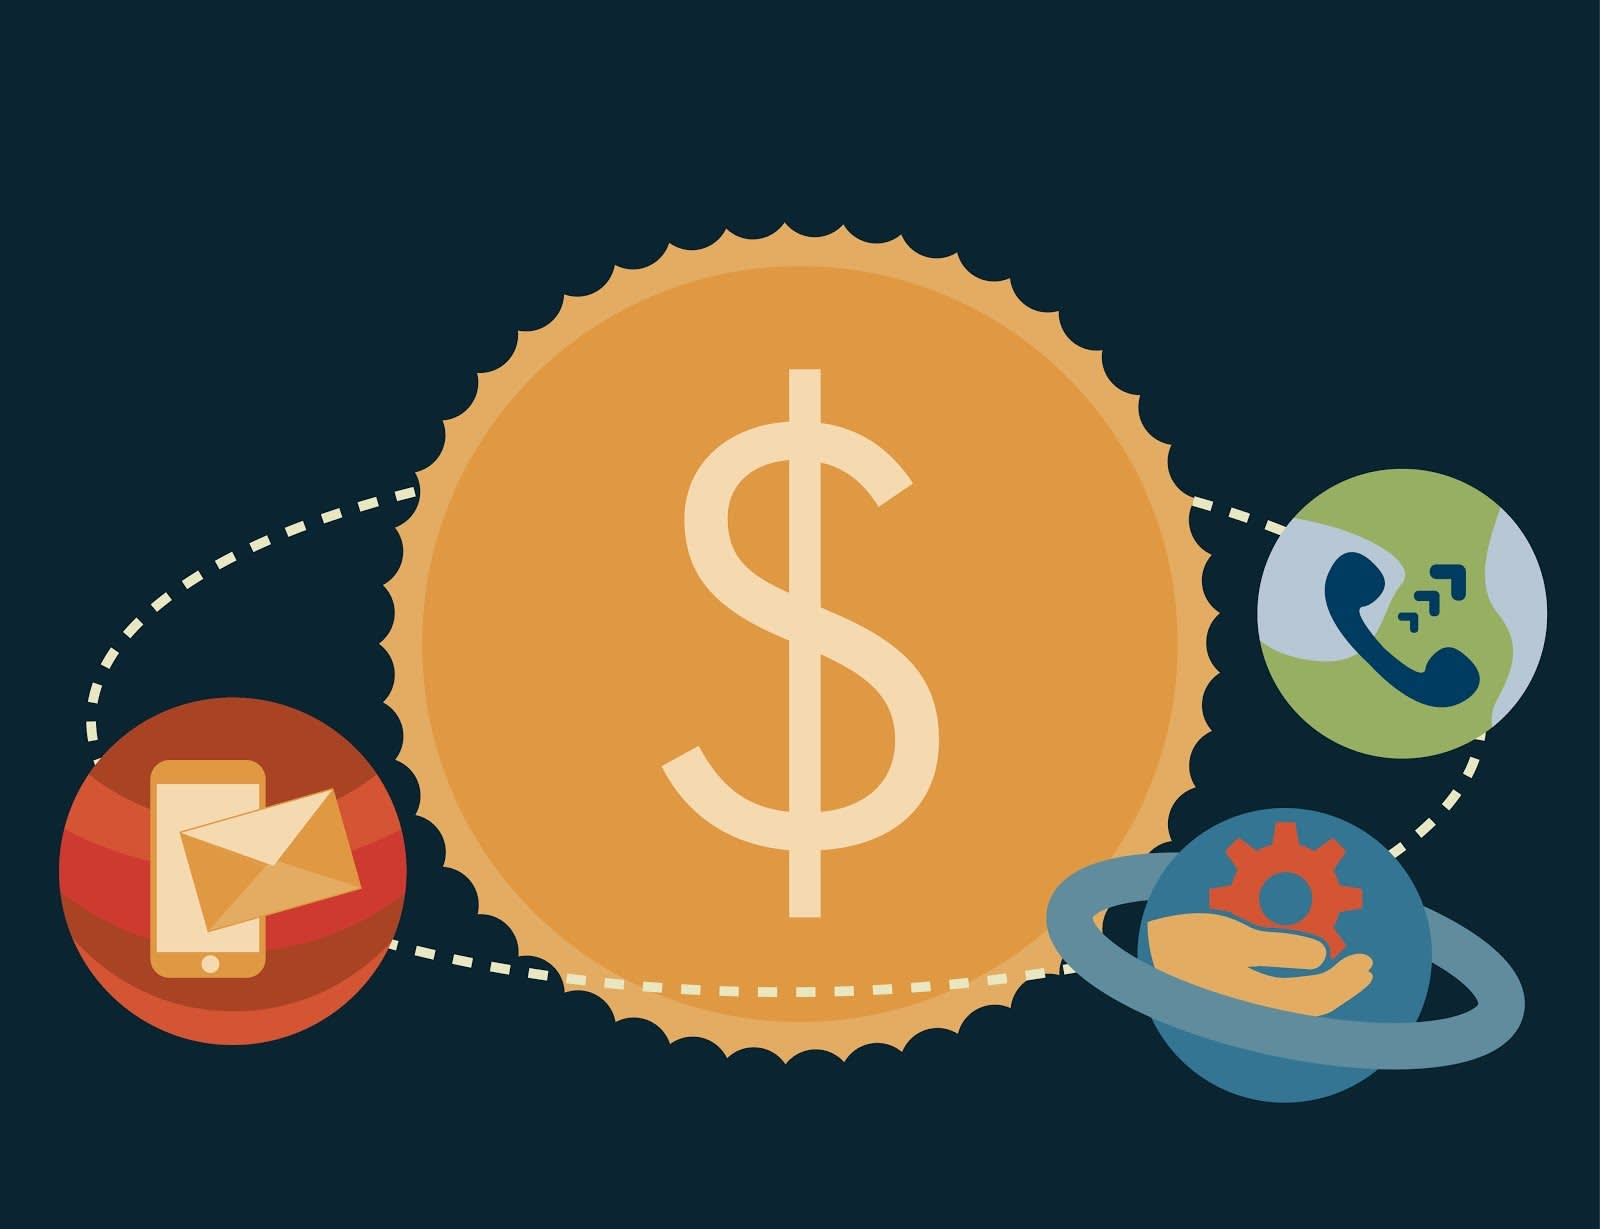 Sales and service activities are like planets revolving around the sun of billing and revenue recognition.